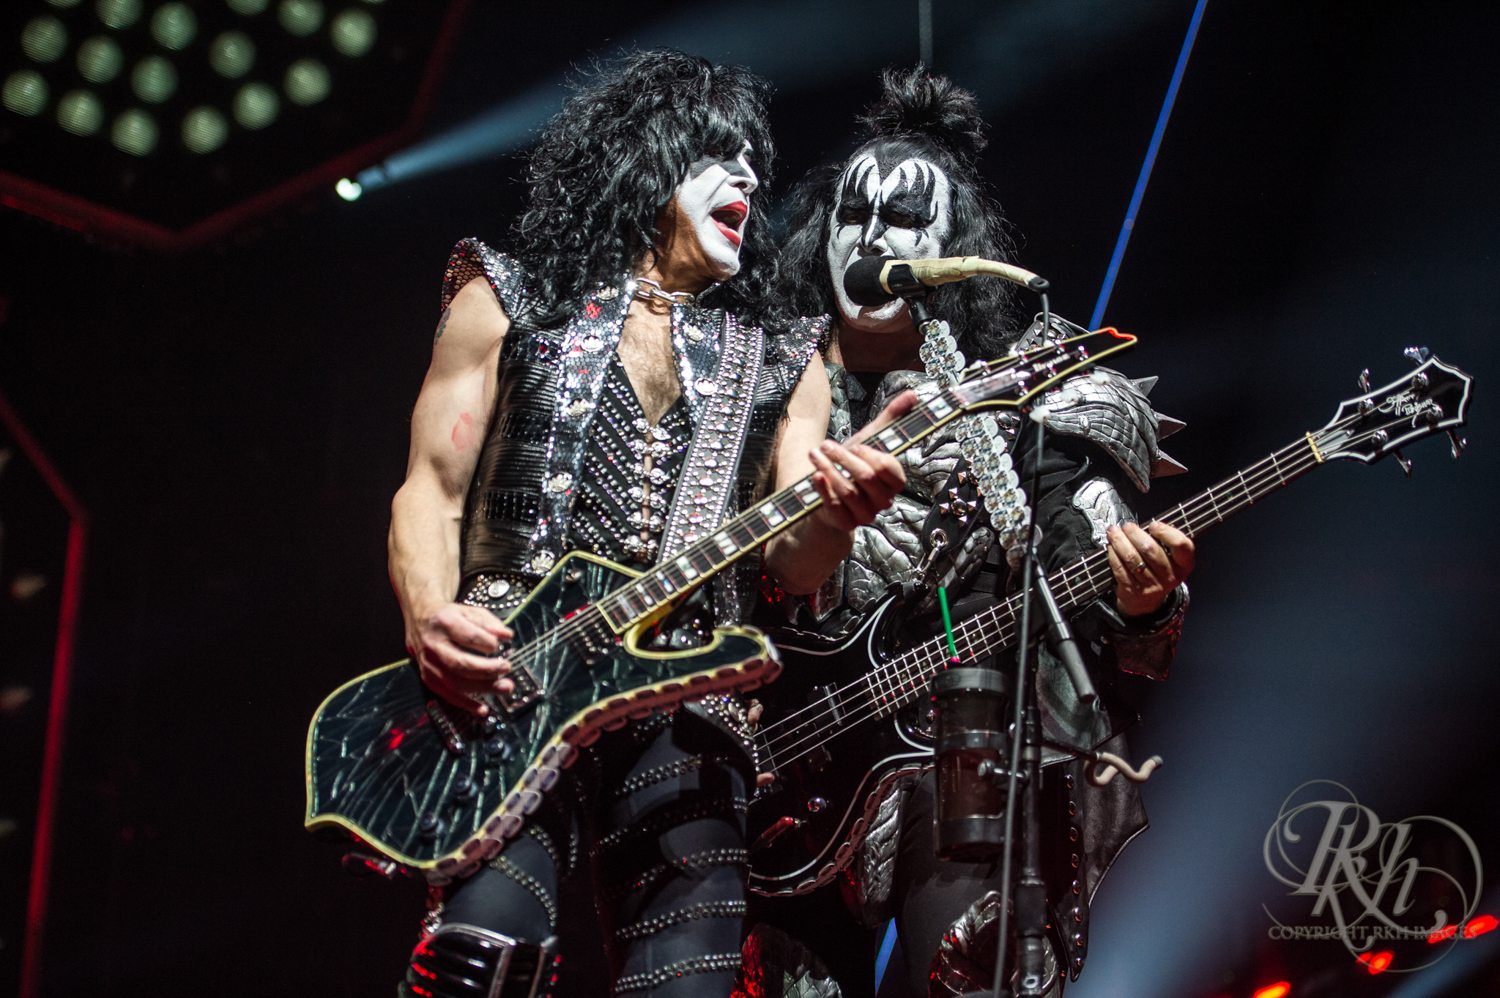 Kiss - End of the Road Tour - Target Center - Minneapolis - Concert Photography - RKH Images  (10 of 12).jpg